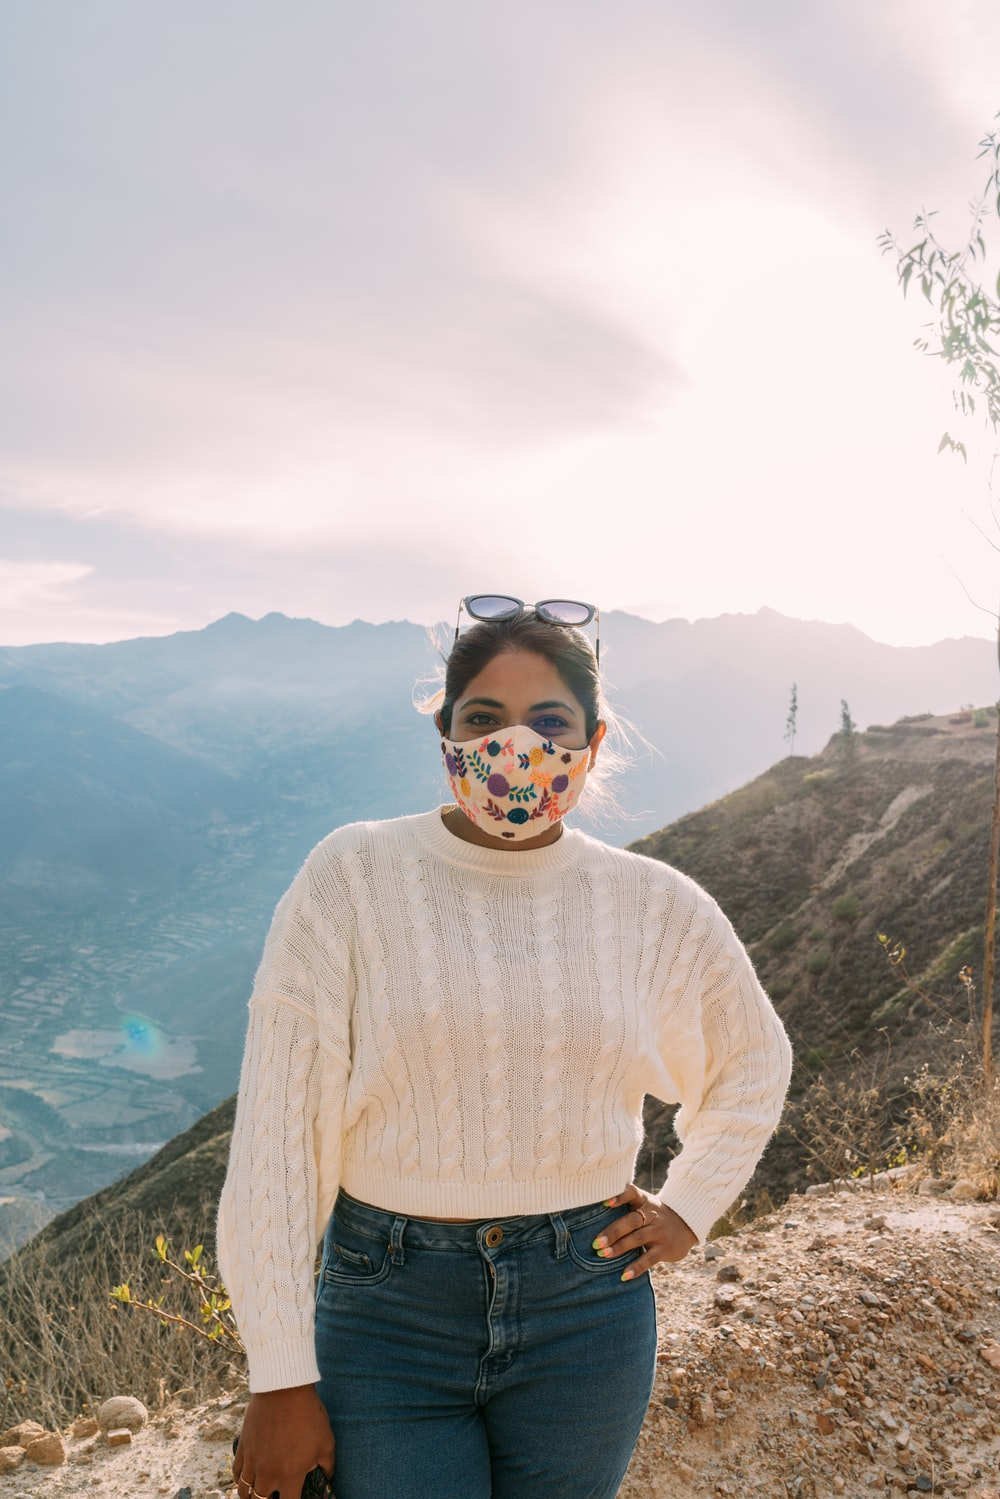 man in white sweater standing on mountain during daytime